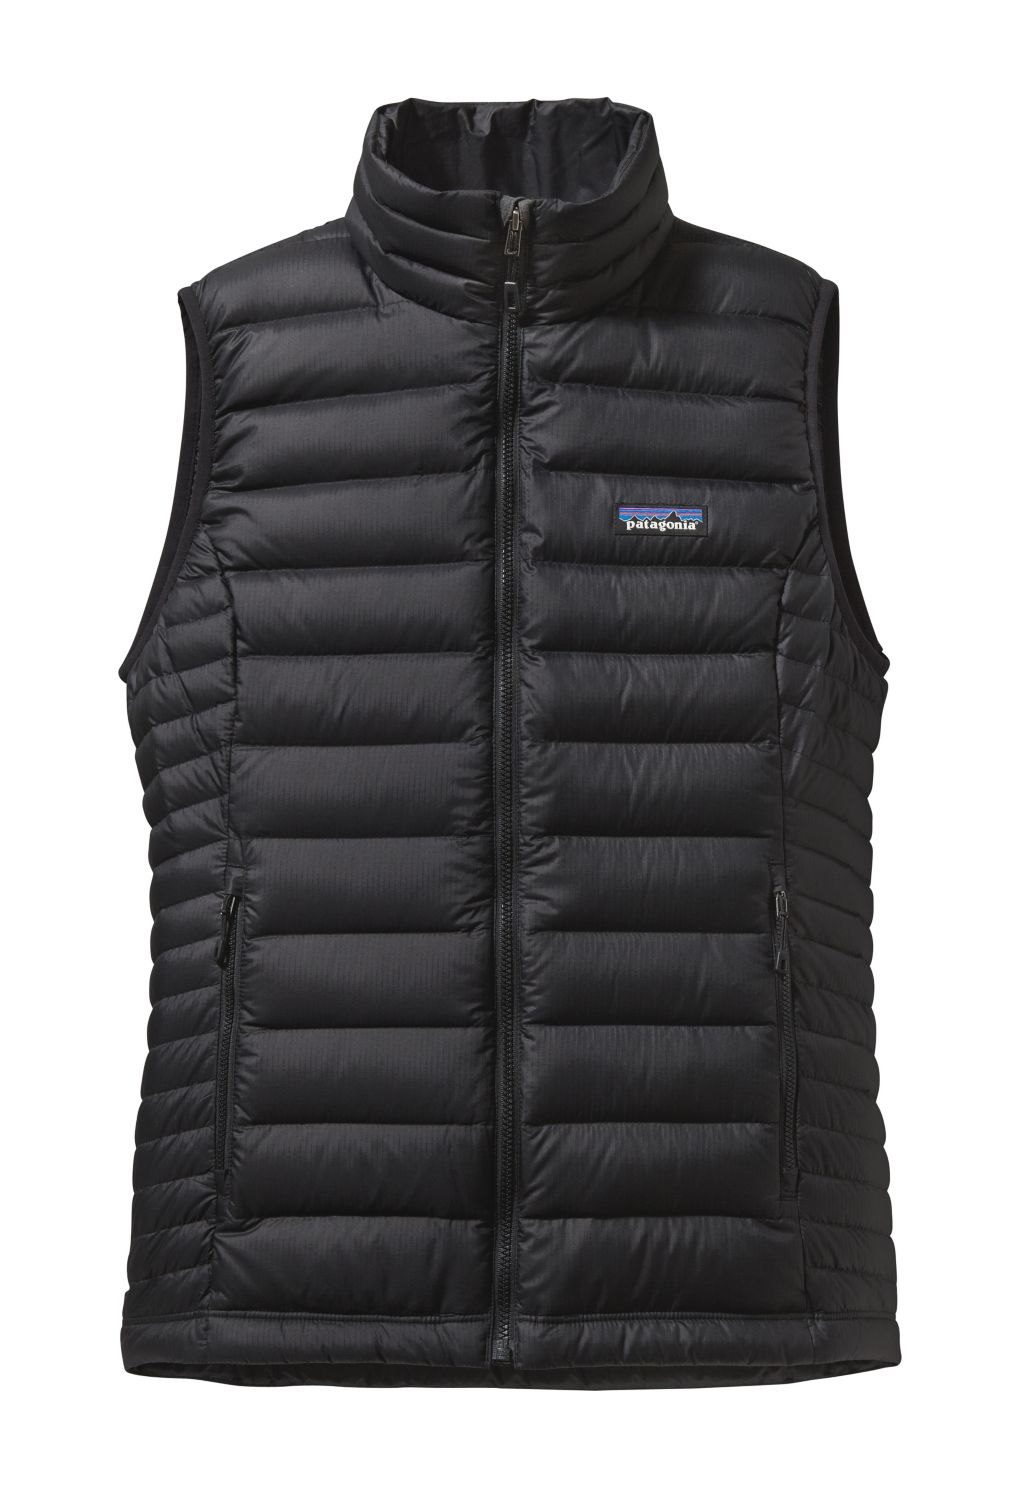 Patagonia Down Sweater Vest Women S